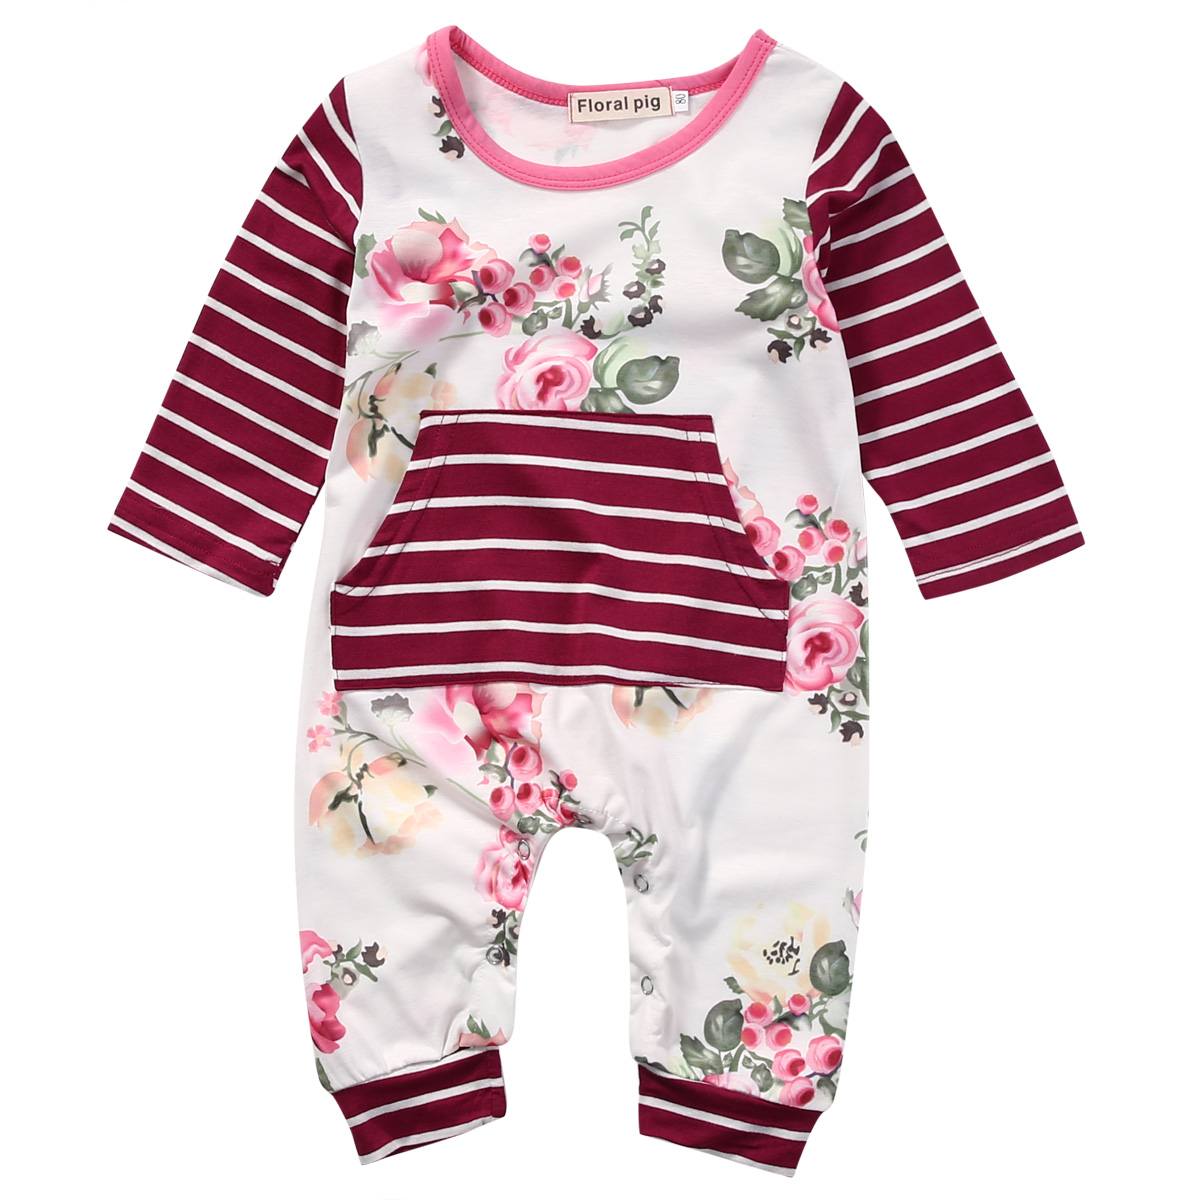 Newborn Infant Kids Baby Girls Cotton Floral Romper One-piece Jumpsuit Outfits Baby Girl Clothes Spring Winter Baby Clothes pudcoco newborn infant baby girls clothes short sleeve floral romper headband summer cute cotton one piece clothes